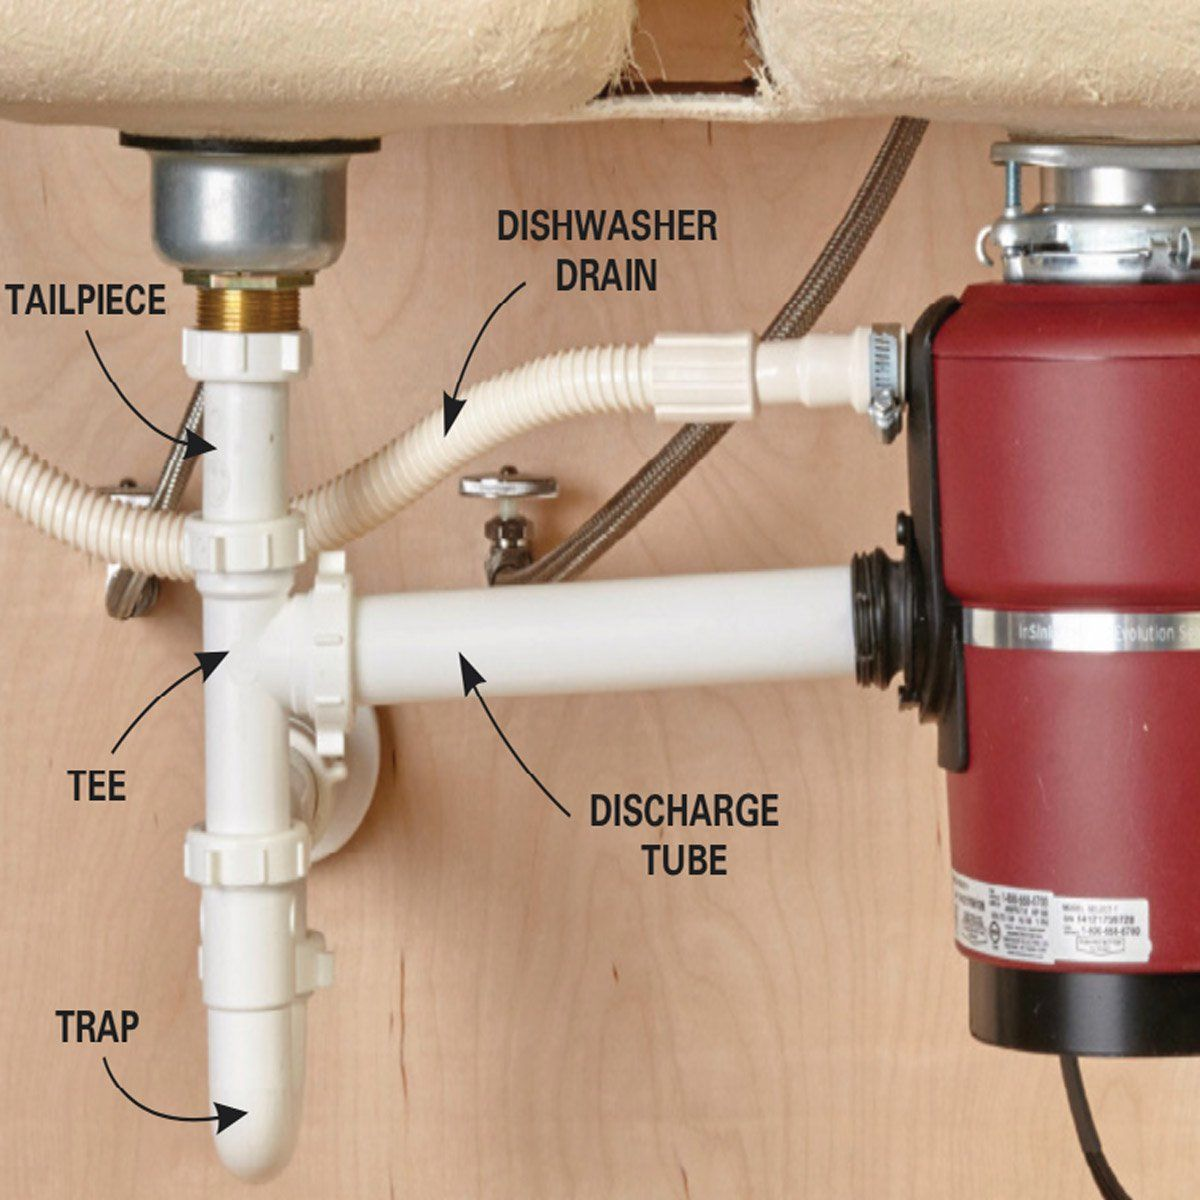 How To Replace A Garbage Disposal Diy Garbage Disposal Garbage Disposal Garbage Disposal Repair